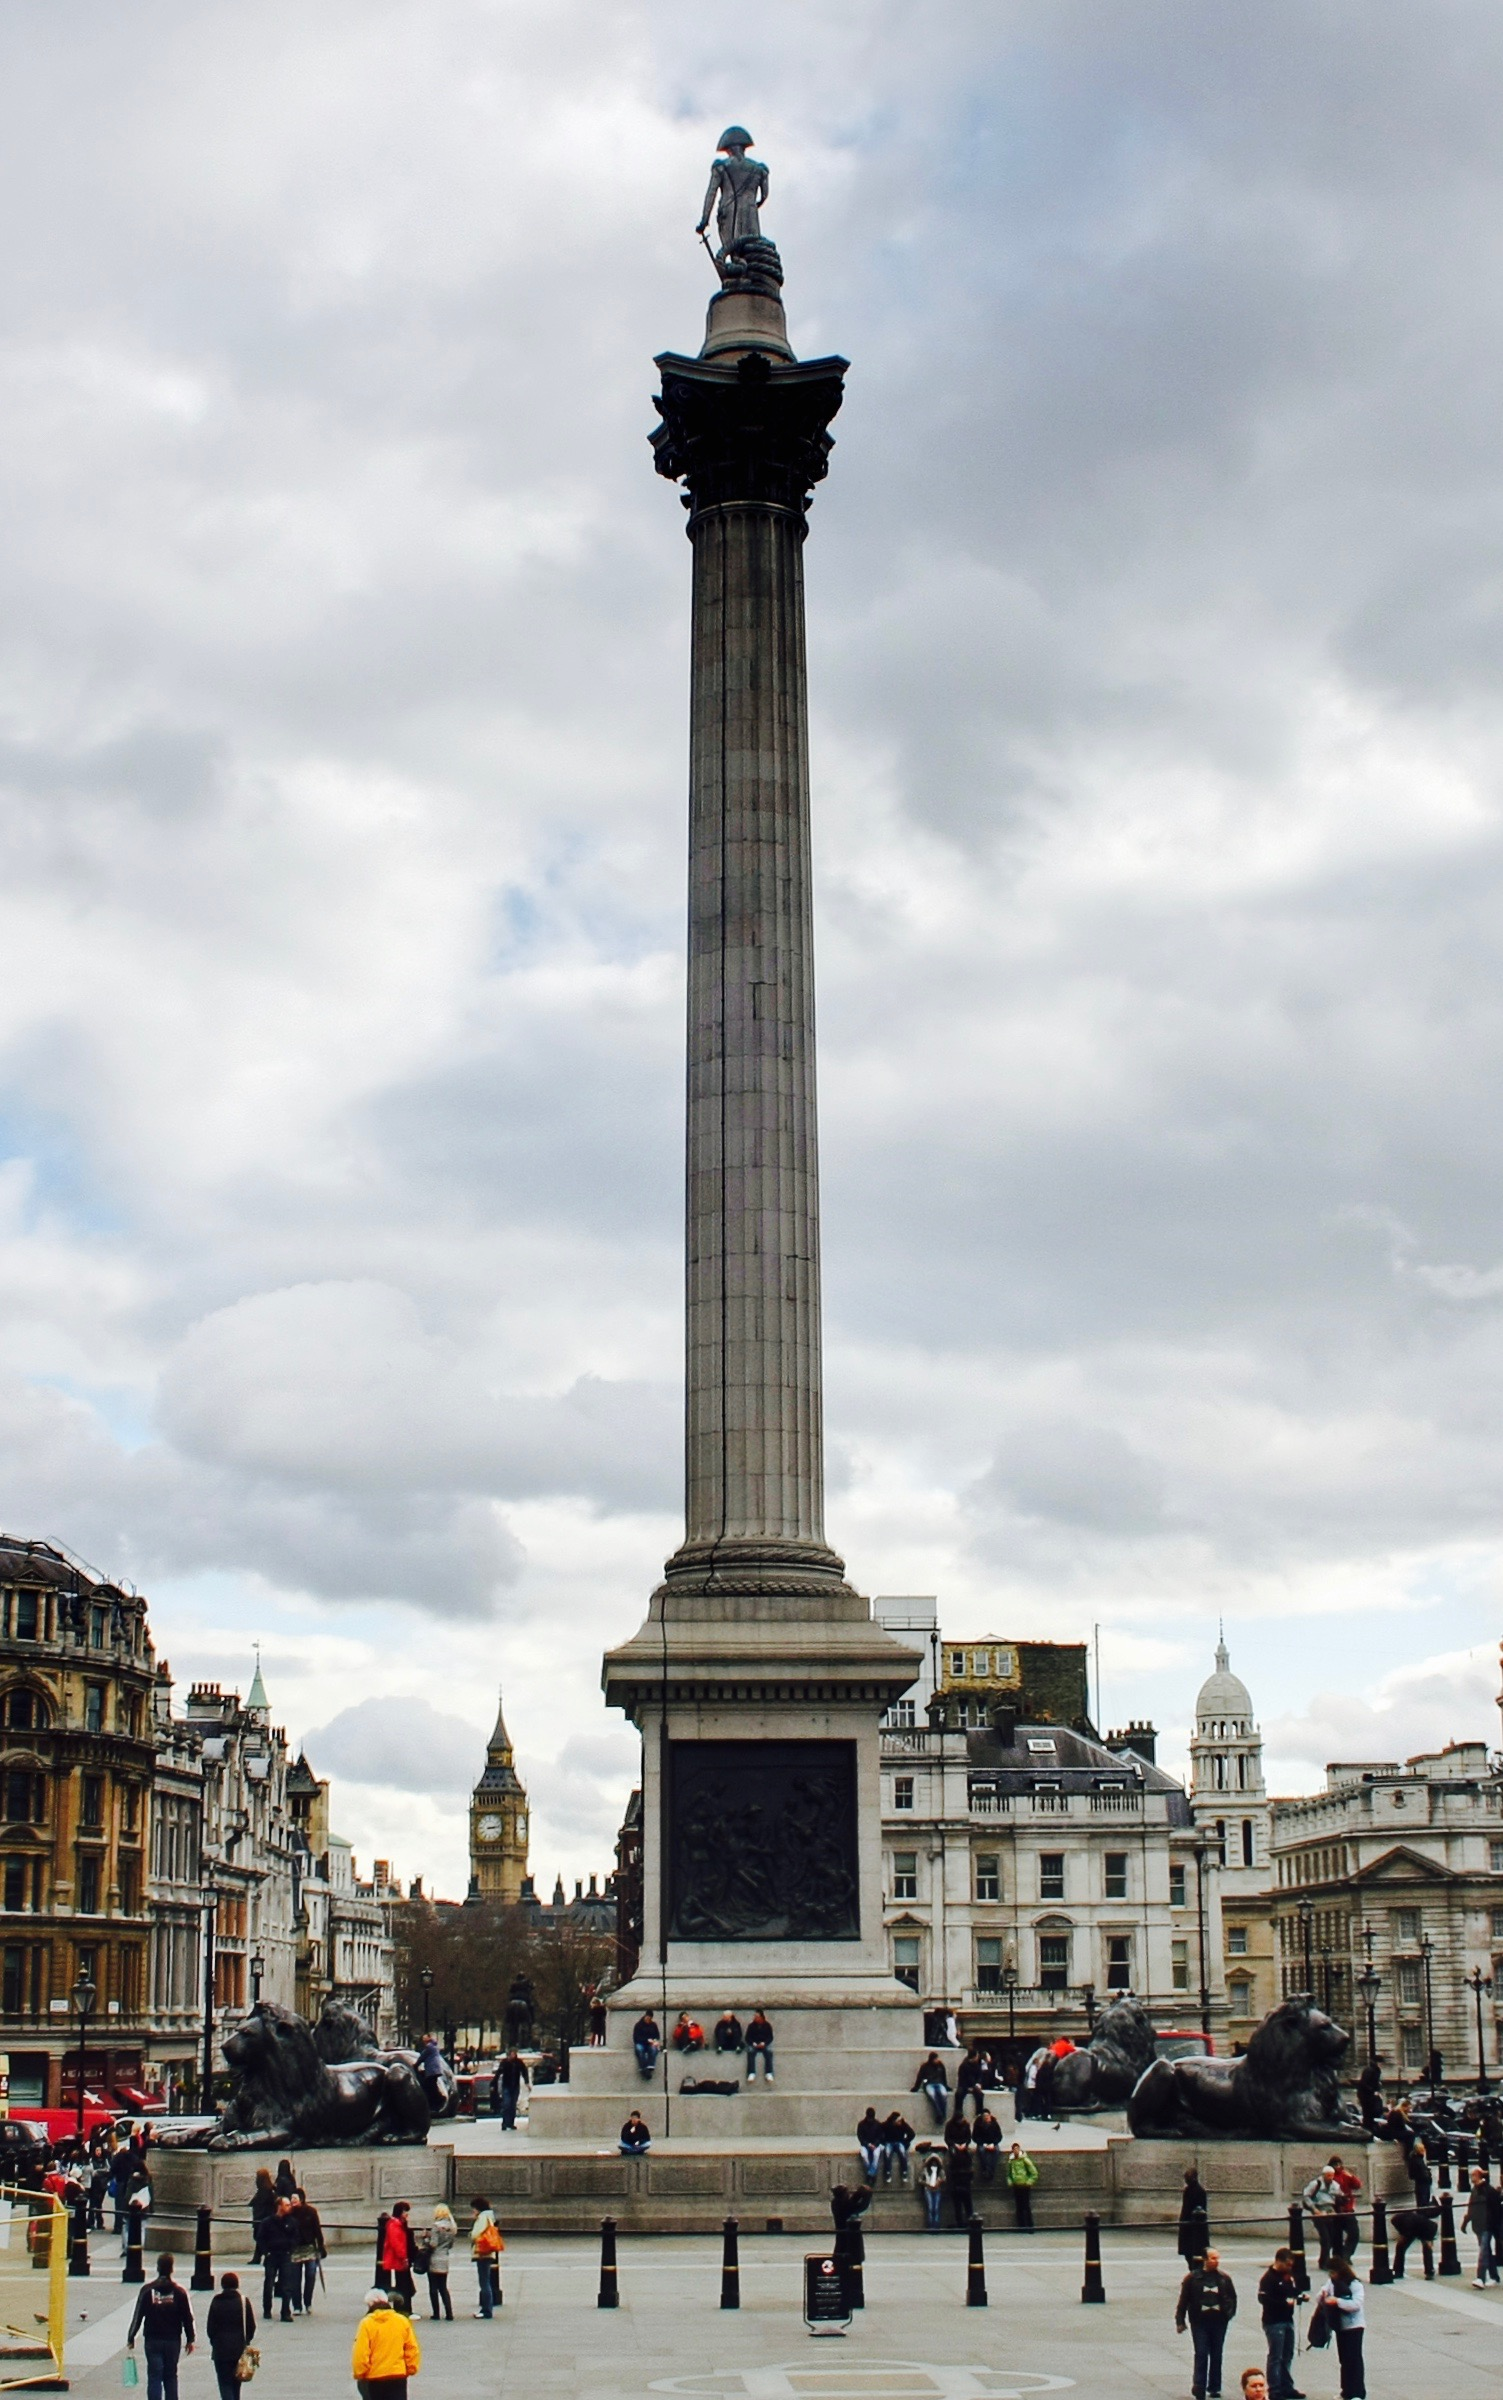 📷  Nelson's Column in Trafalgar Square, London | Photo by    David Castor